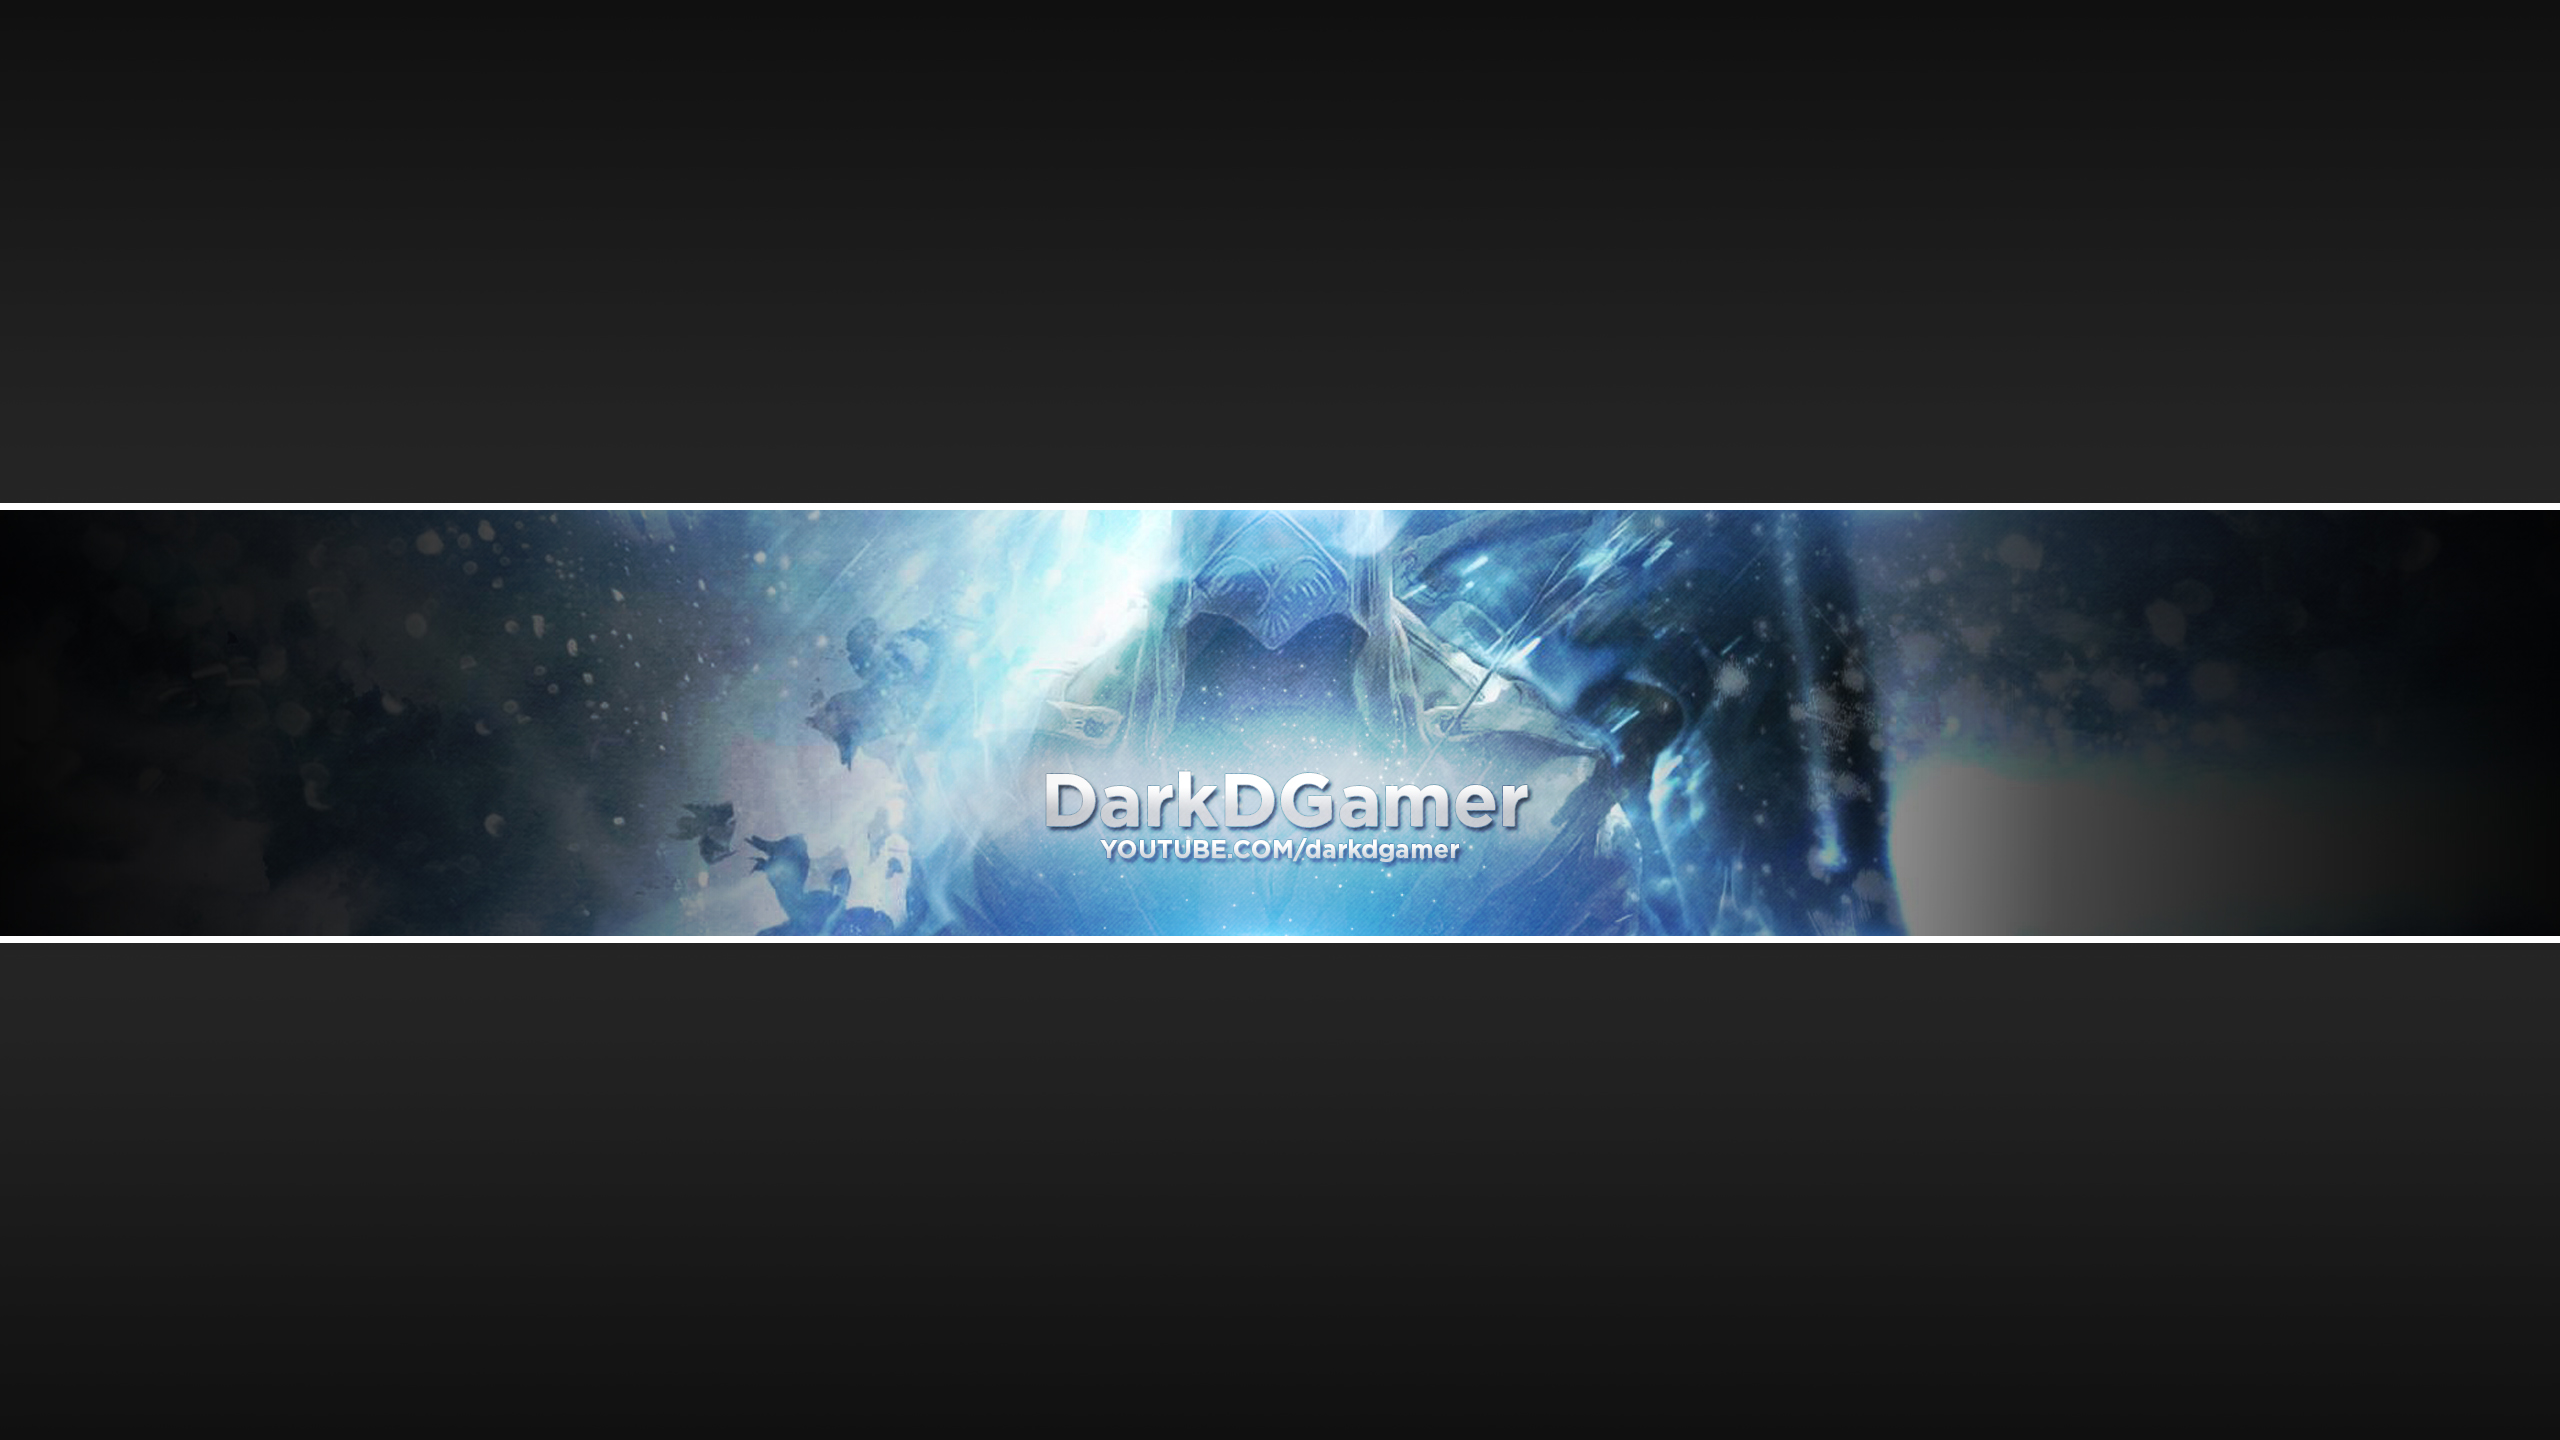 Assassin S Creed Youtube Banner By Darkdgamer On Deviantart